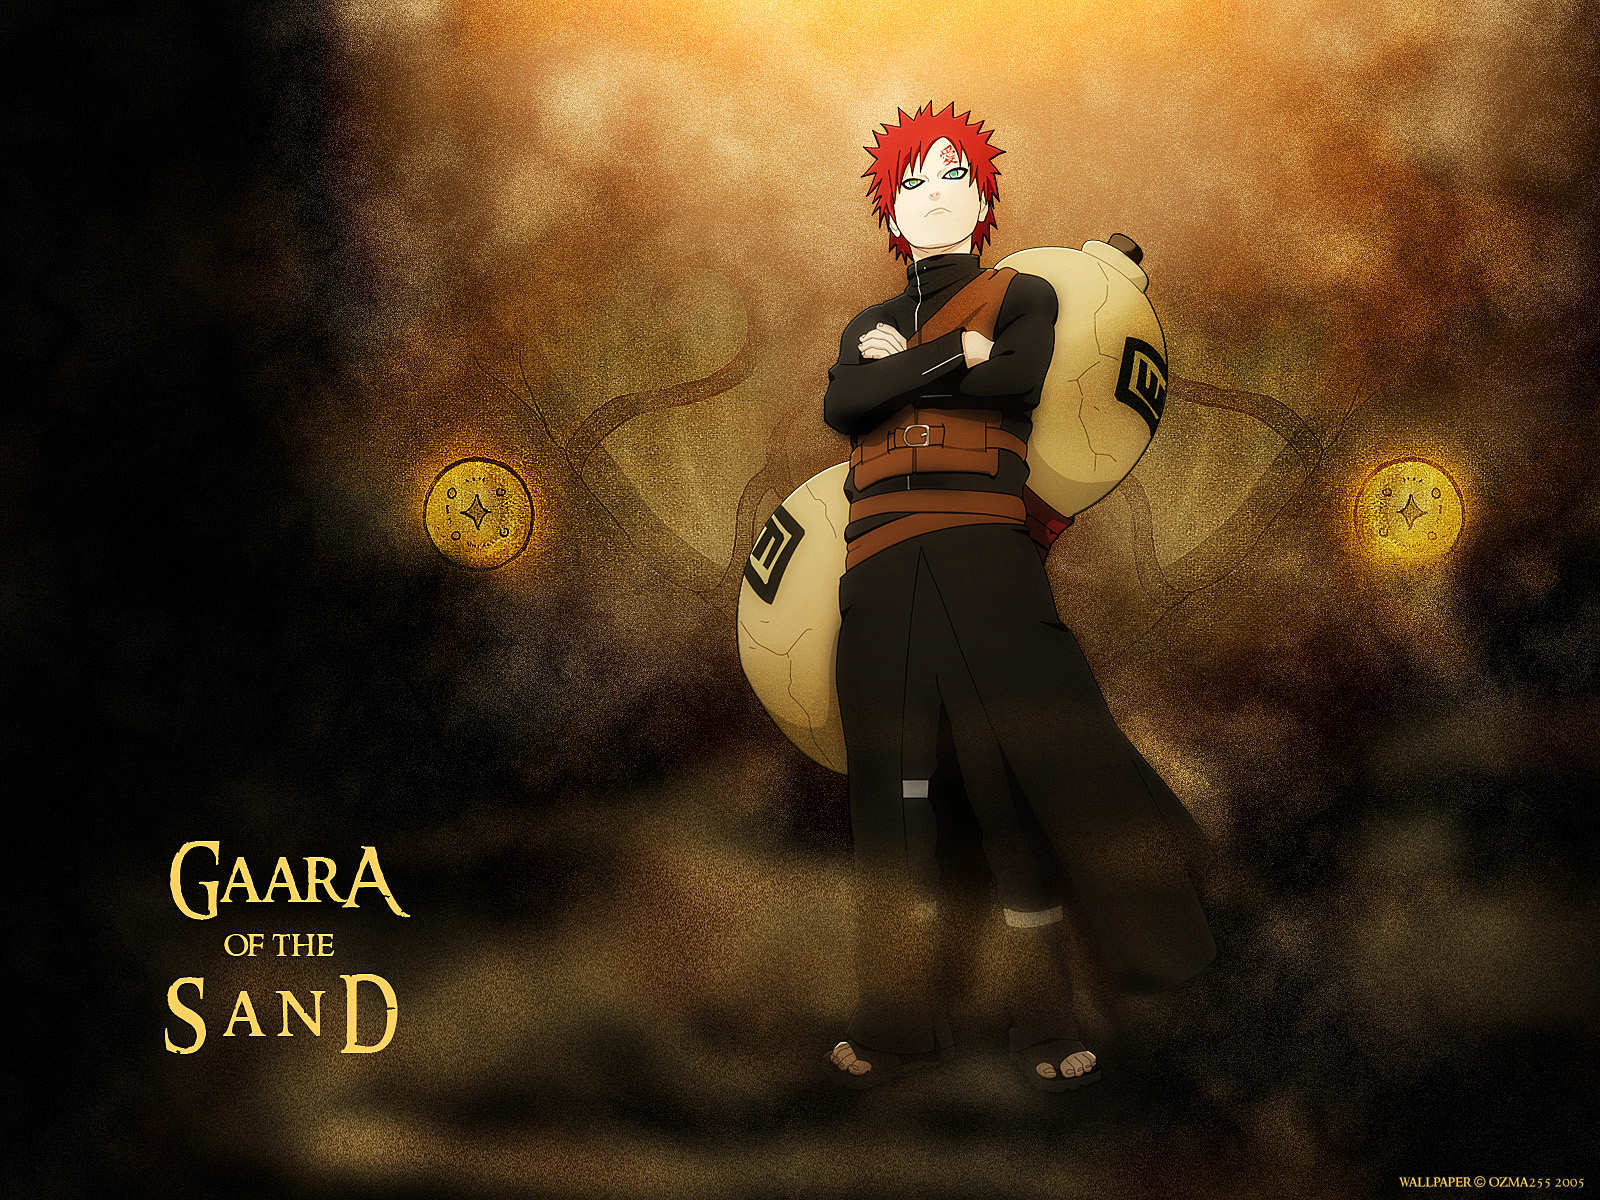 Anime Wallpaper Gaara HD Naruto Movie Anime Wallpapers 1600x1200